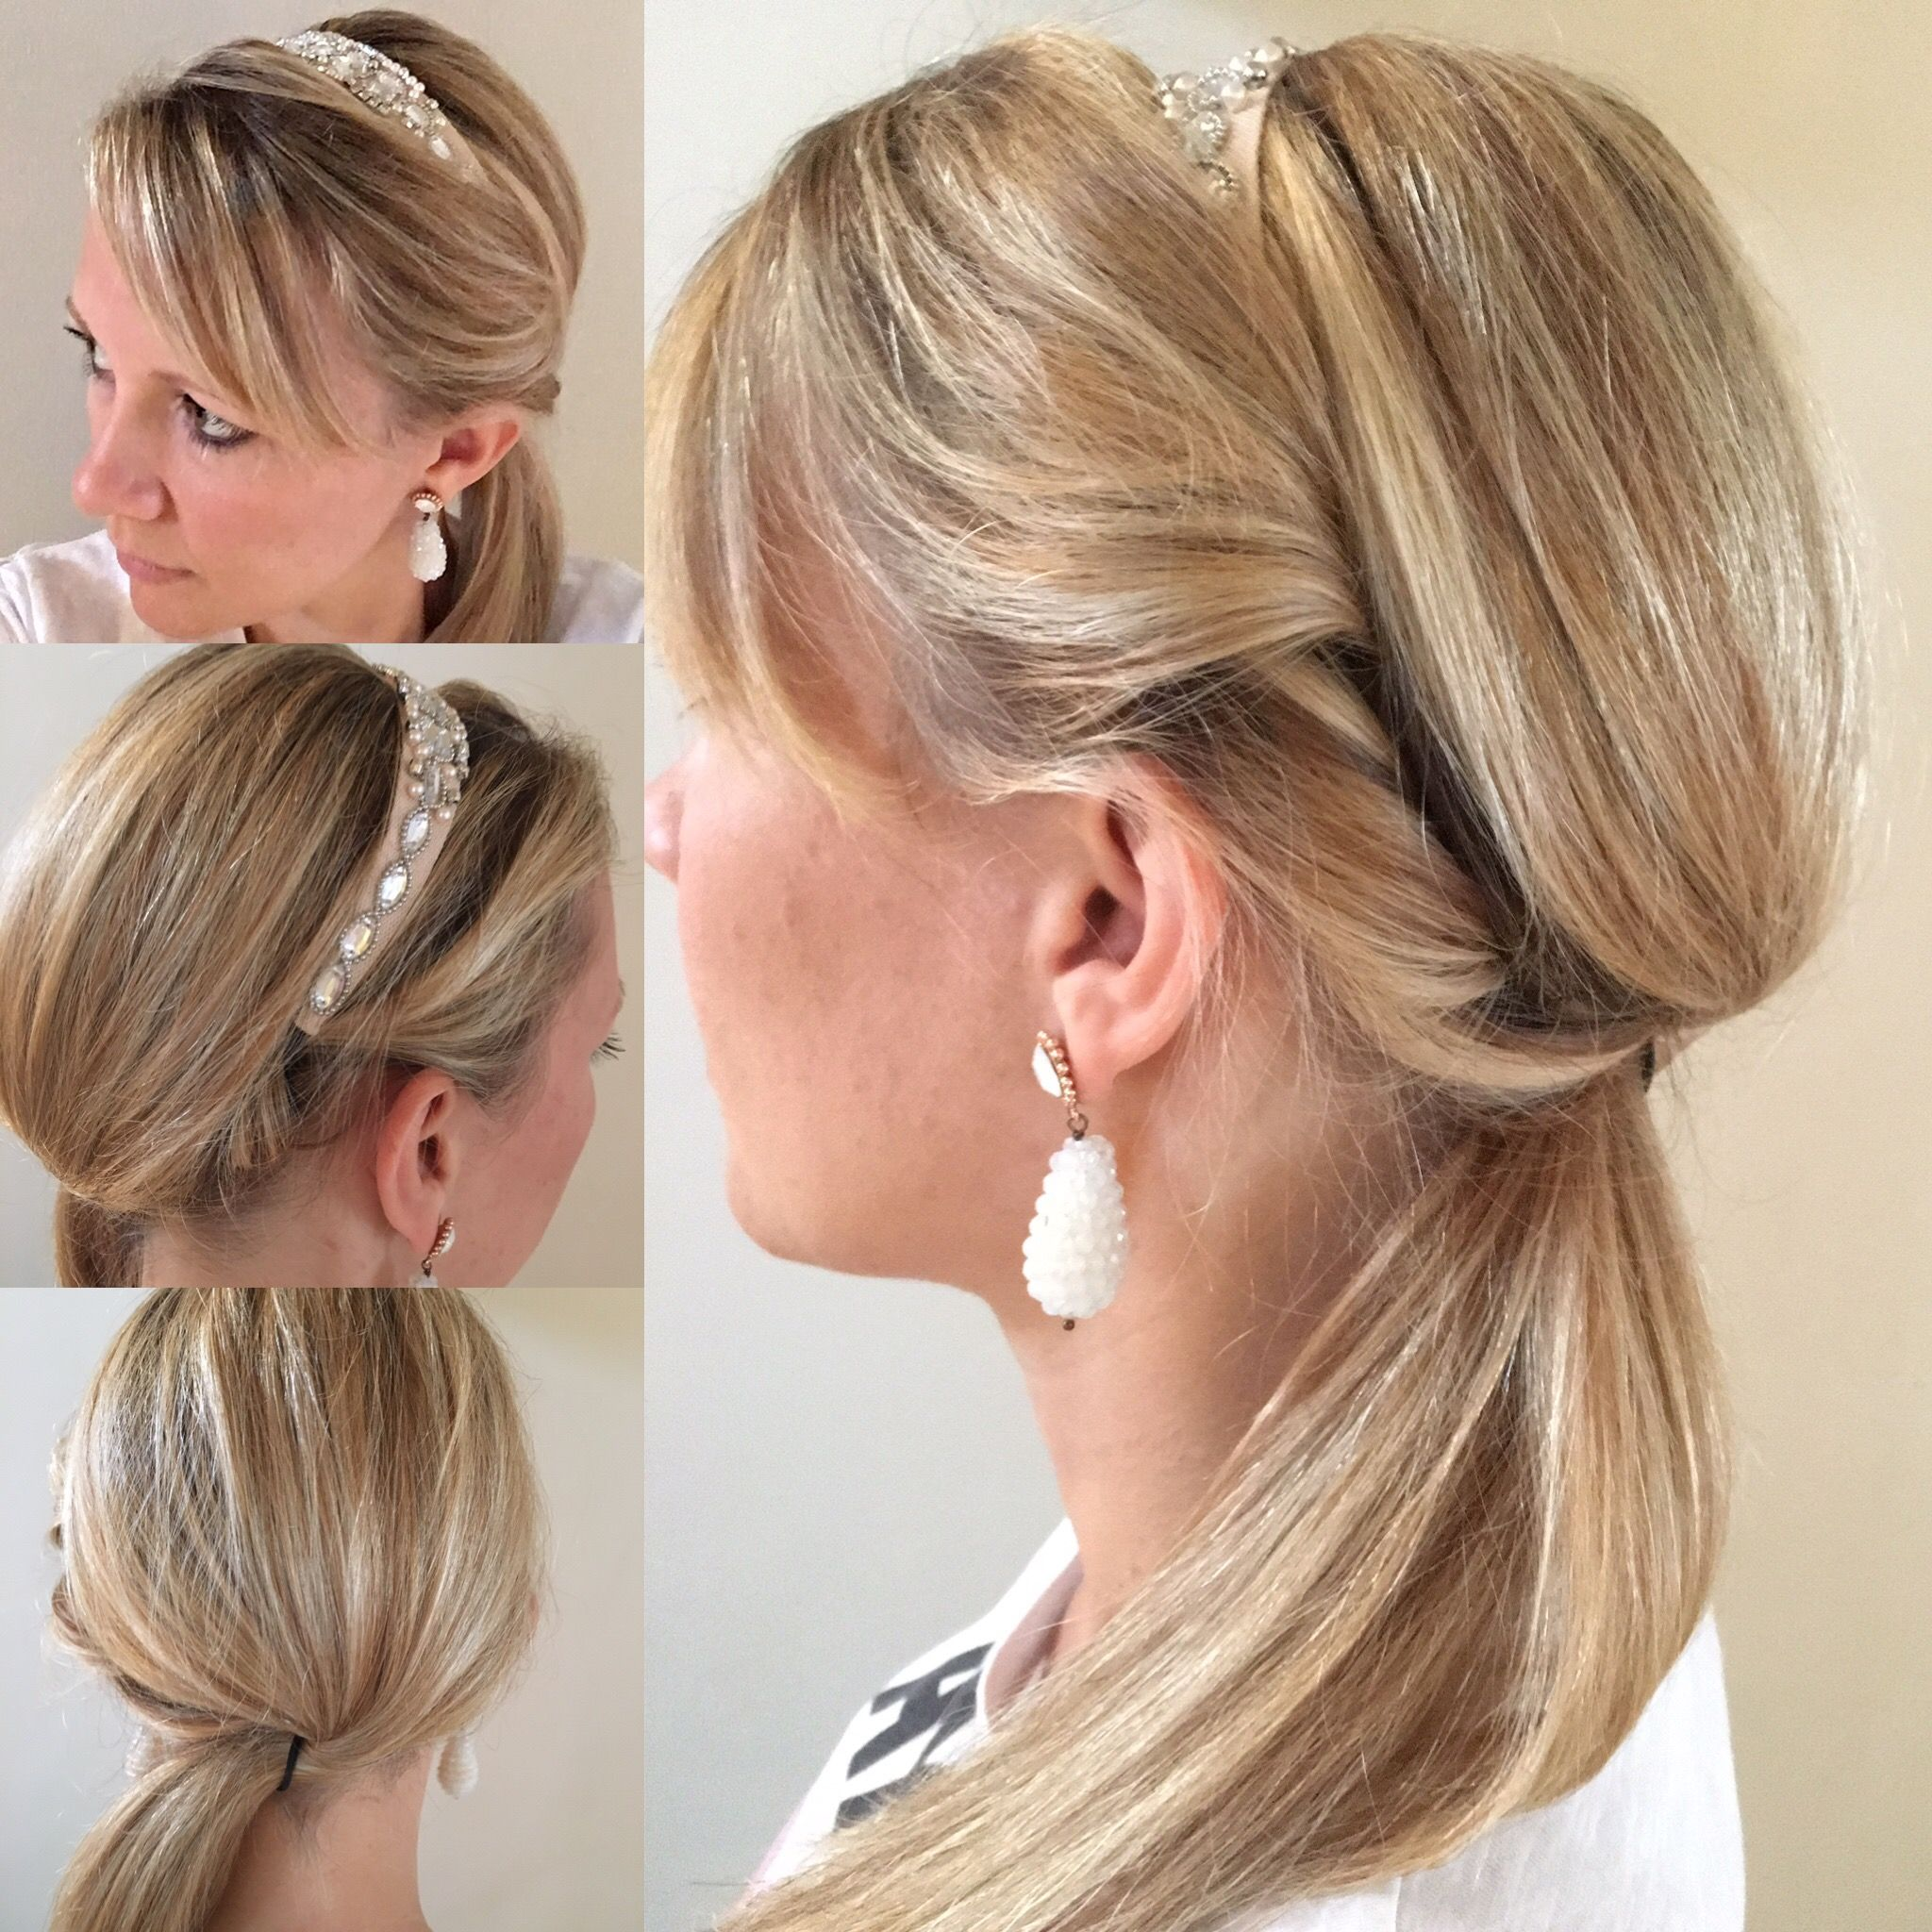 Twisted Hairband Hairstyle No Pins Needed Ouraband Ponytail